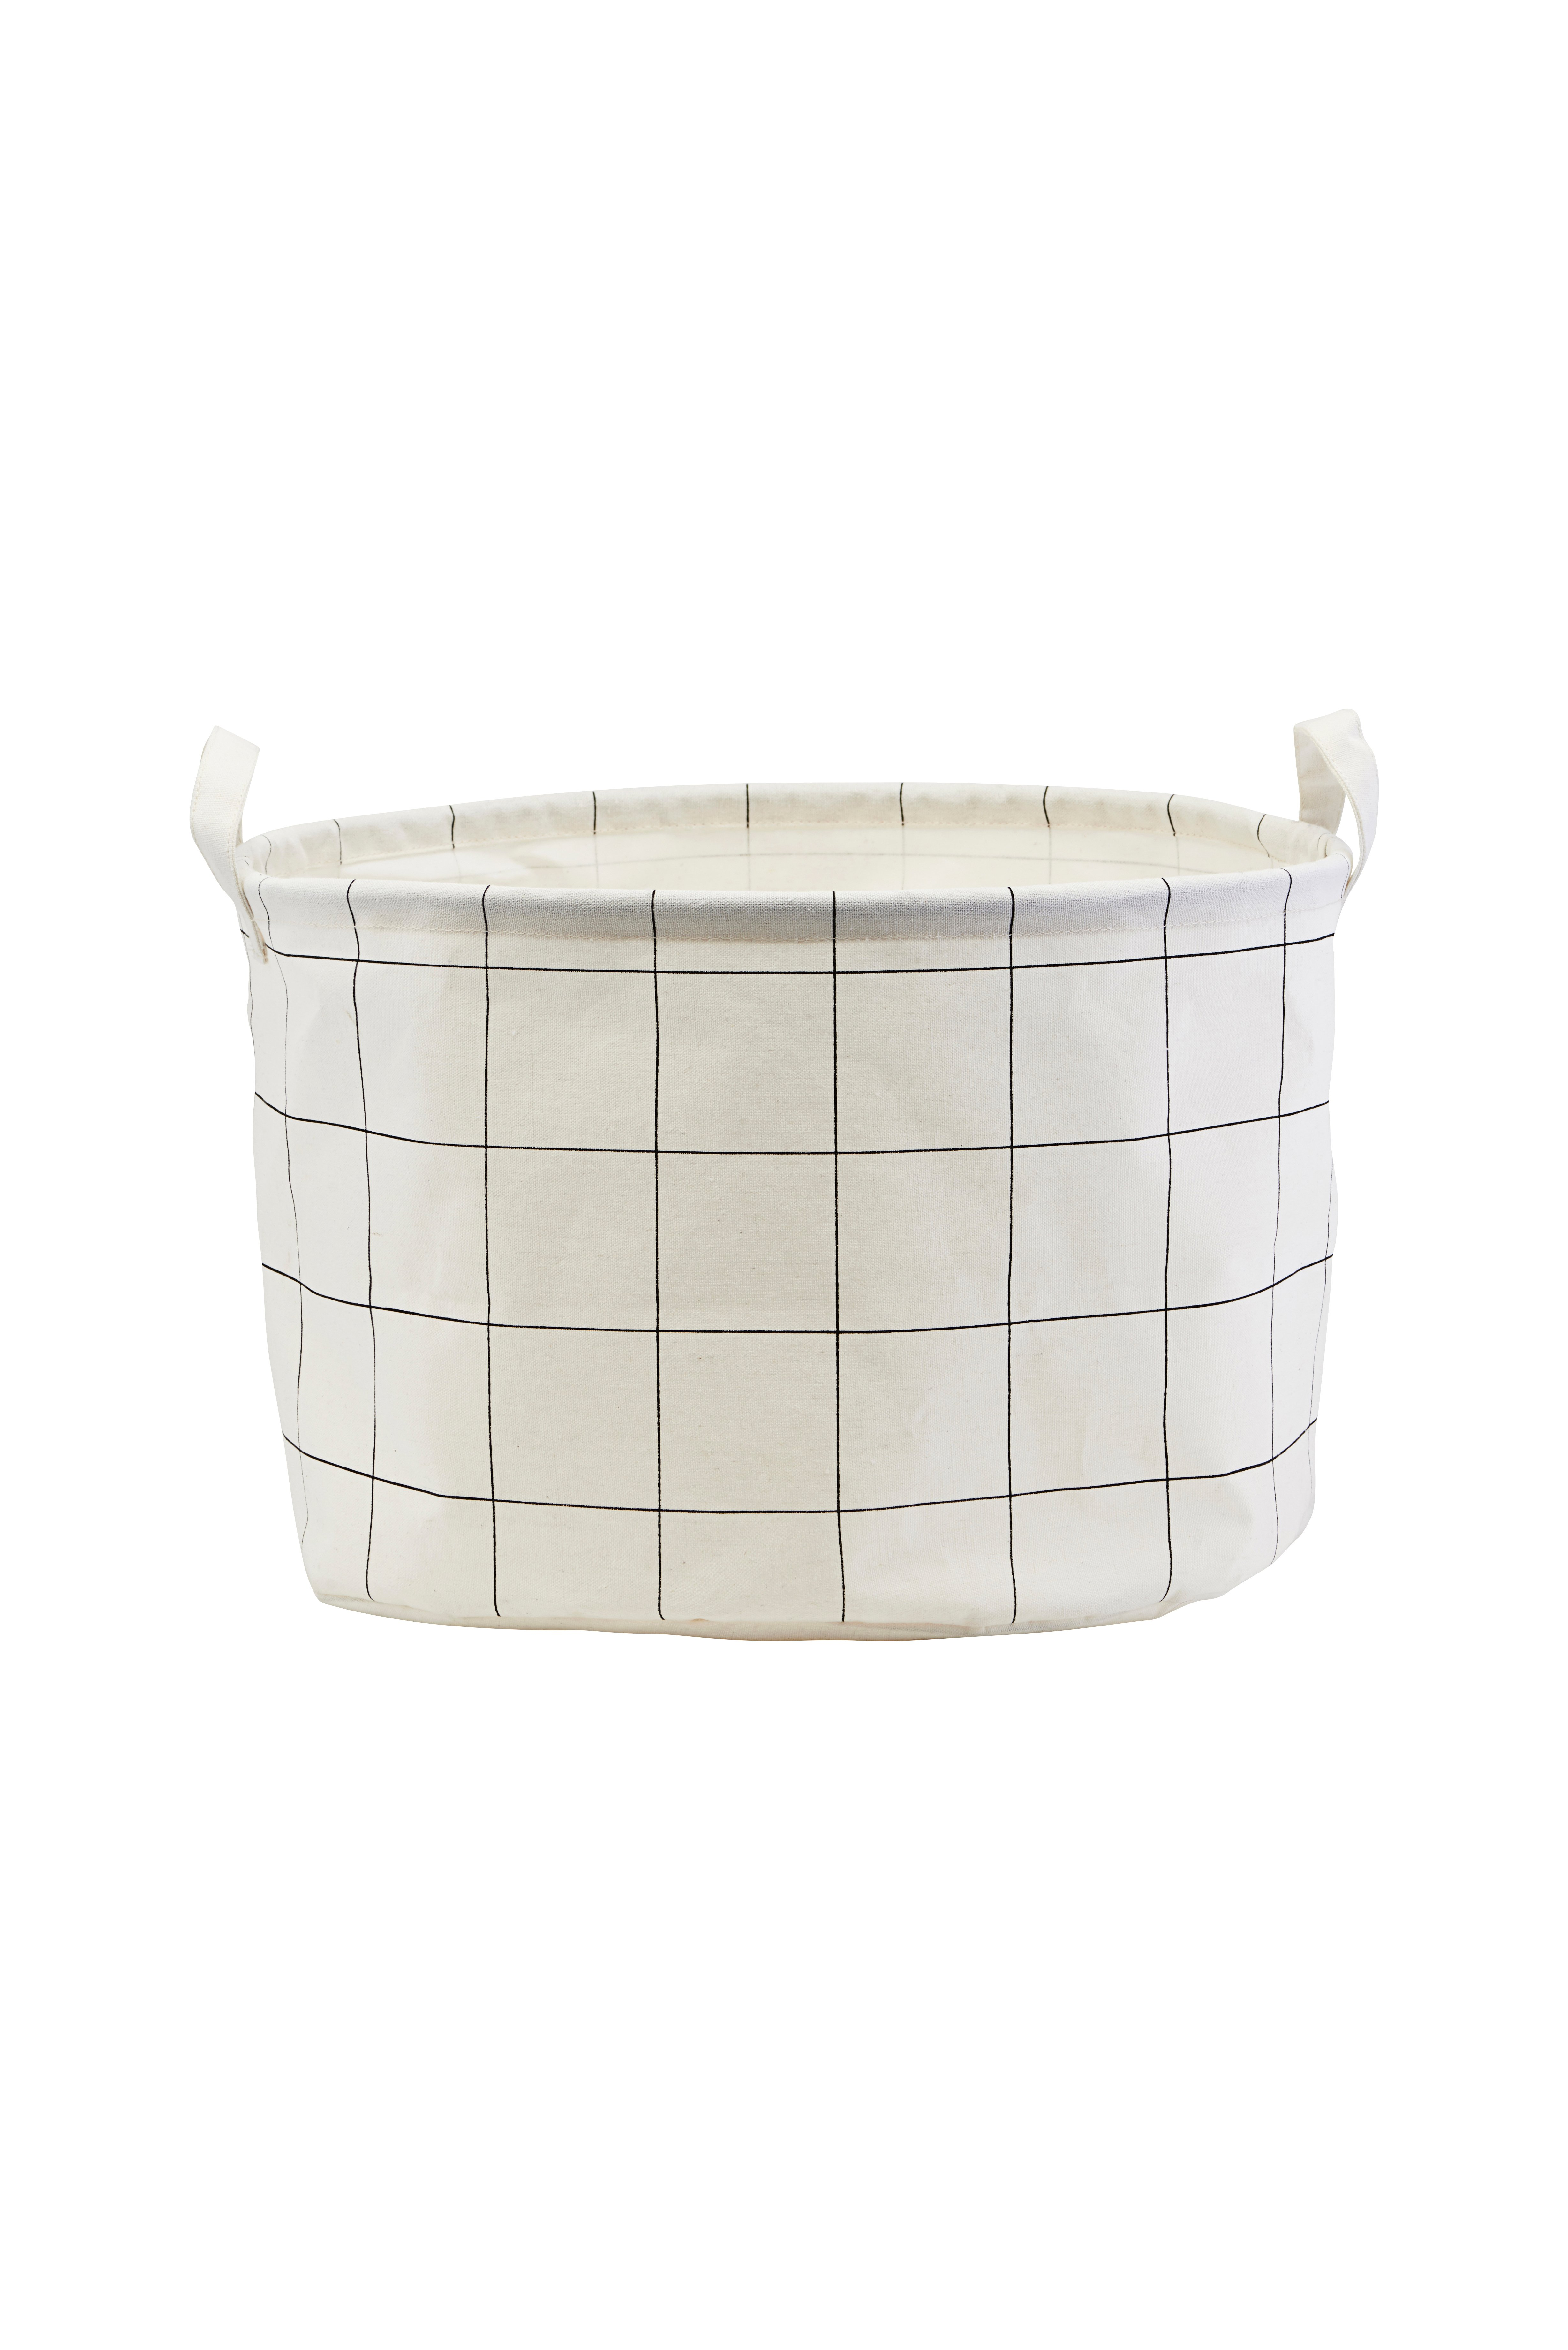 House Doctor - Storage Bag Squares Small - White (LS0440)